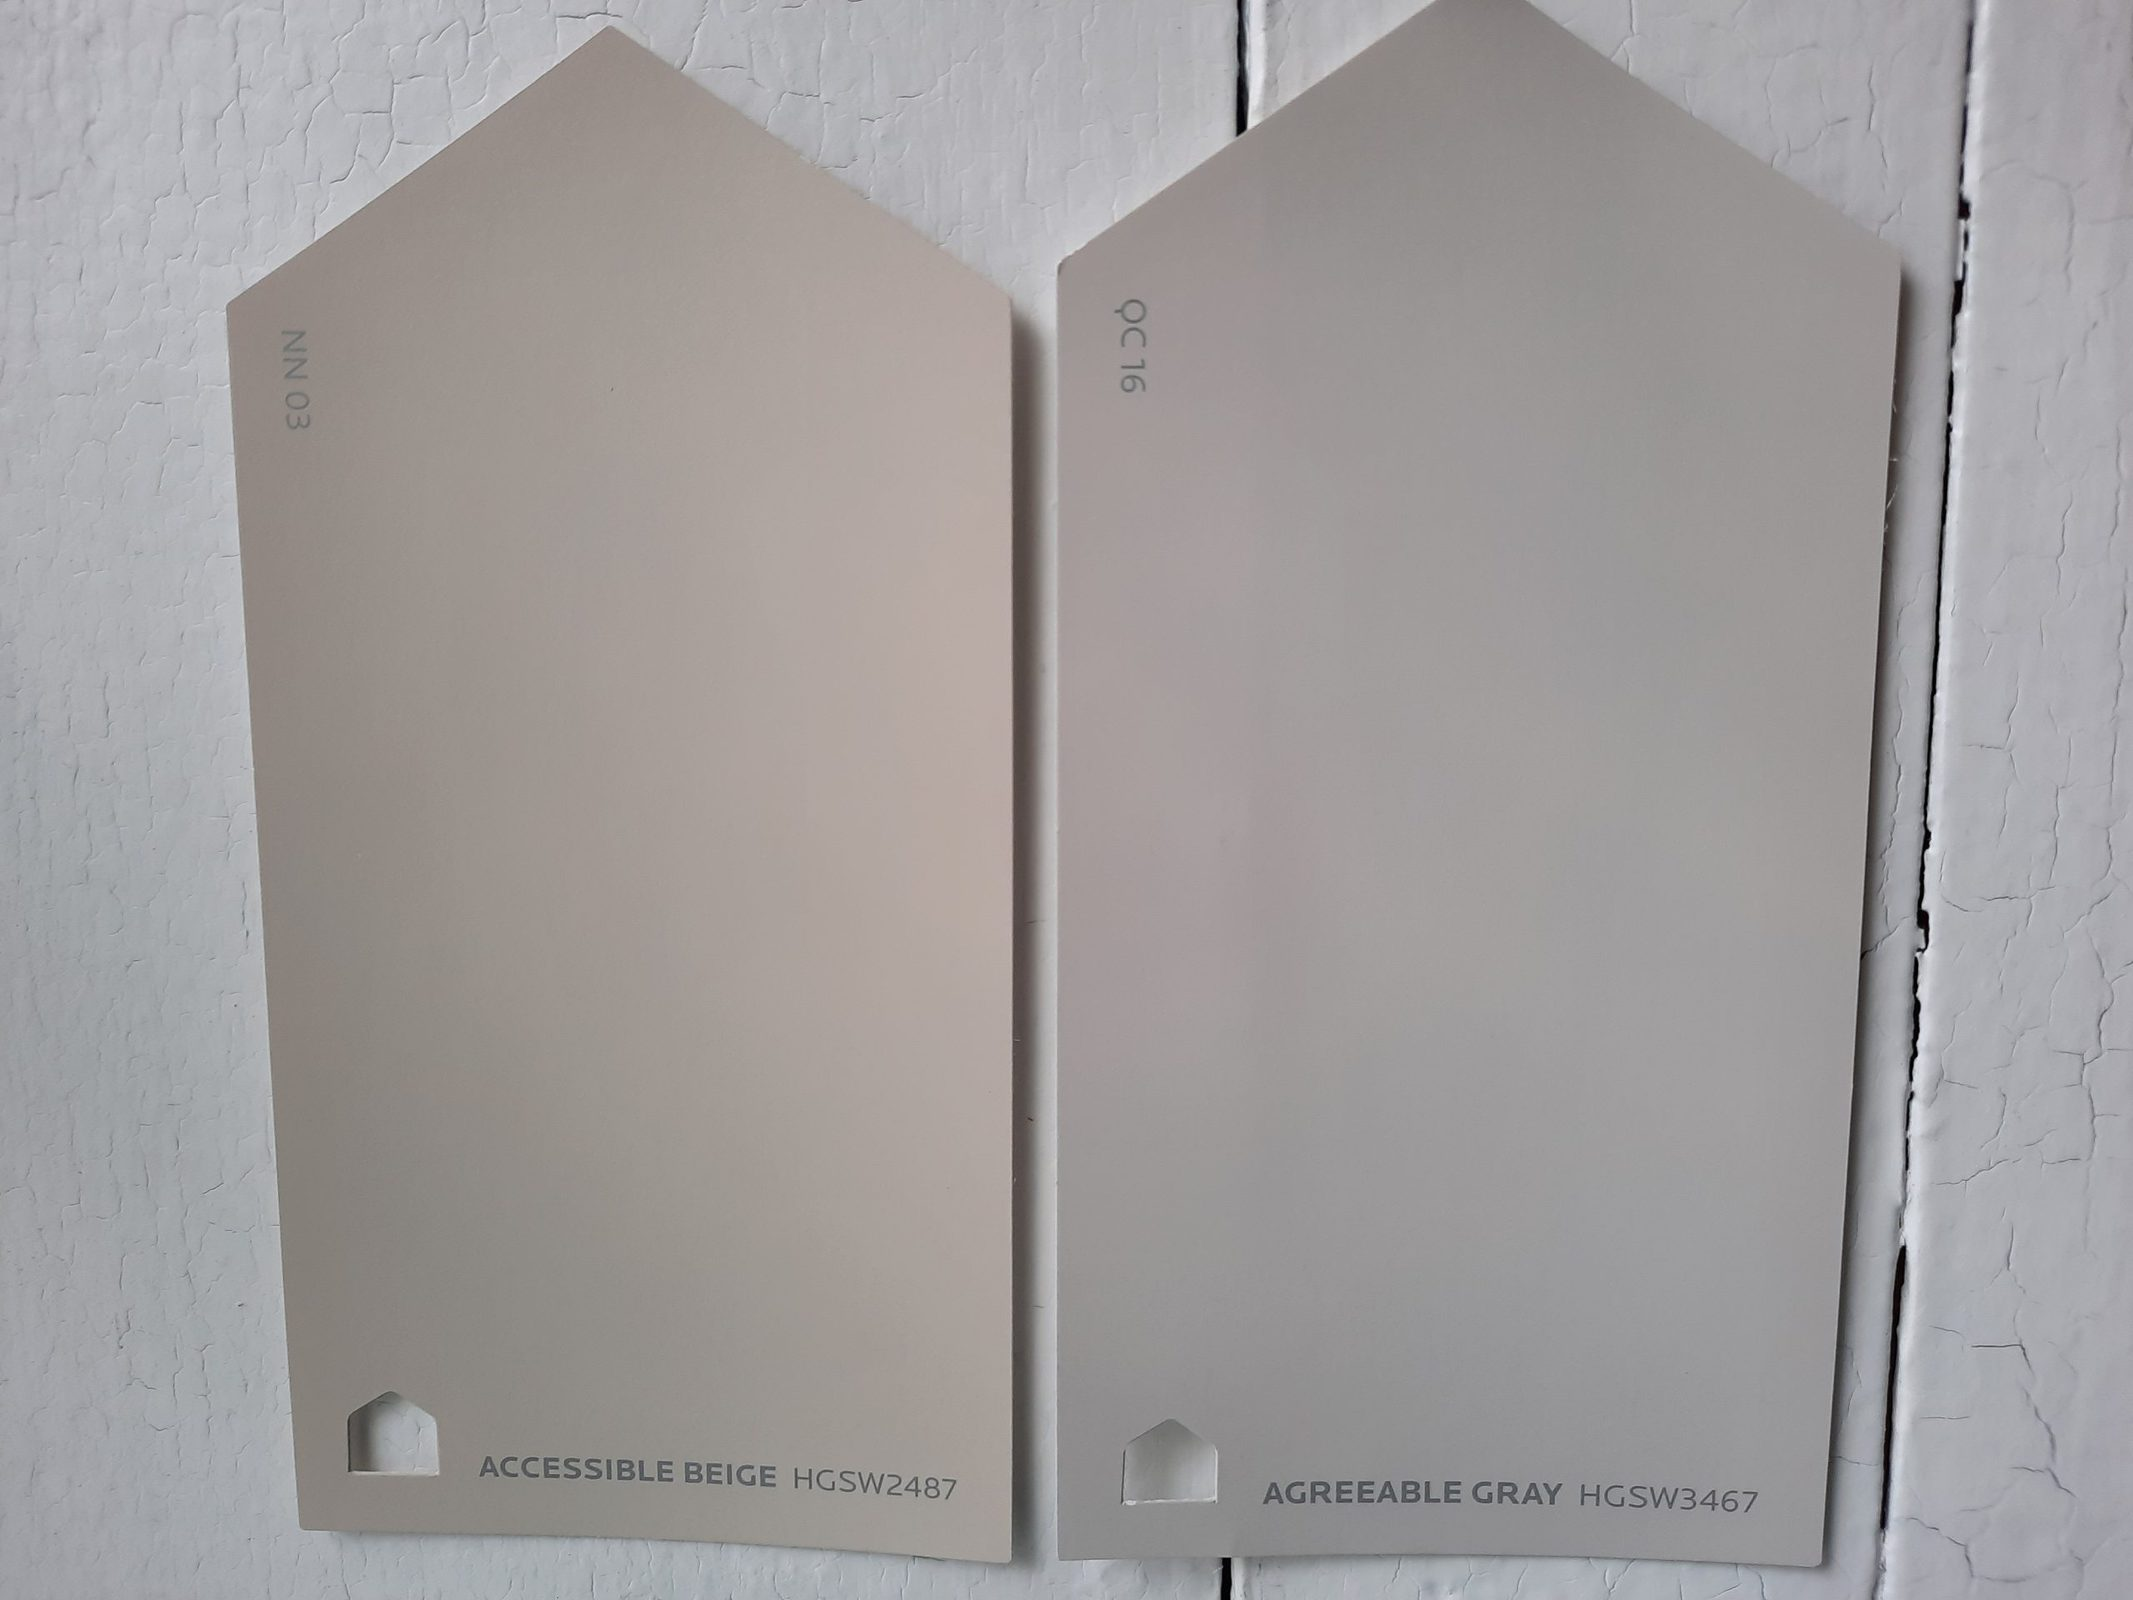 4 Agreeable Gray vs Accessible Beige scaled